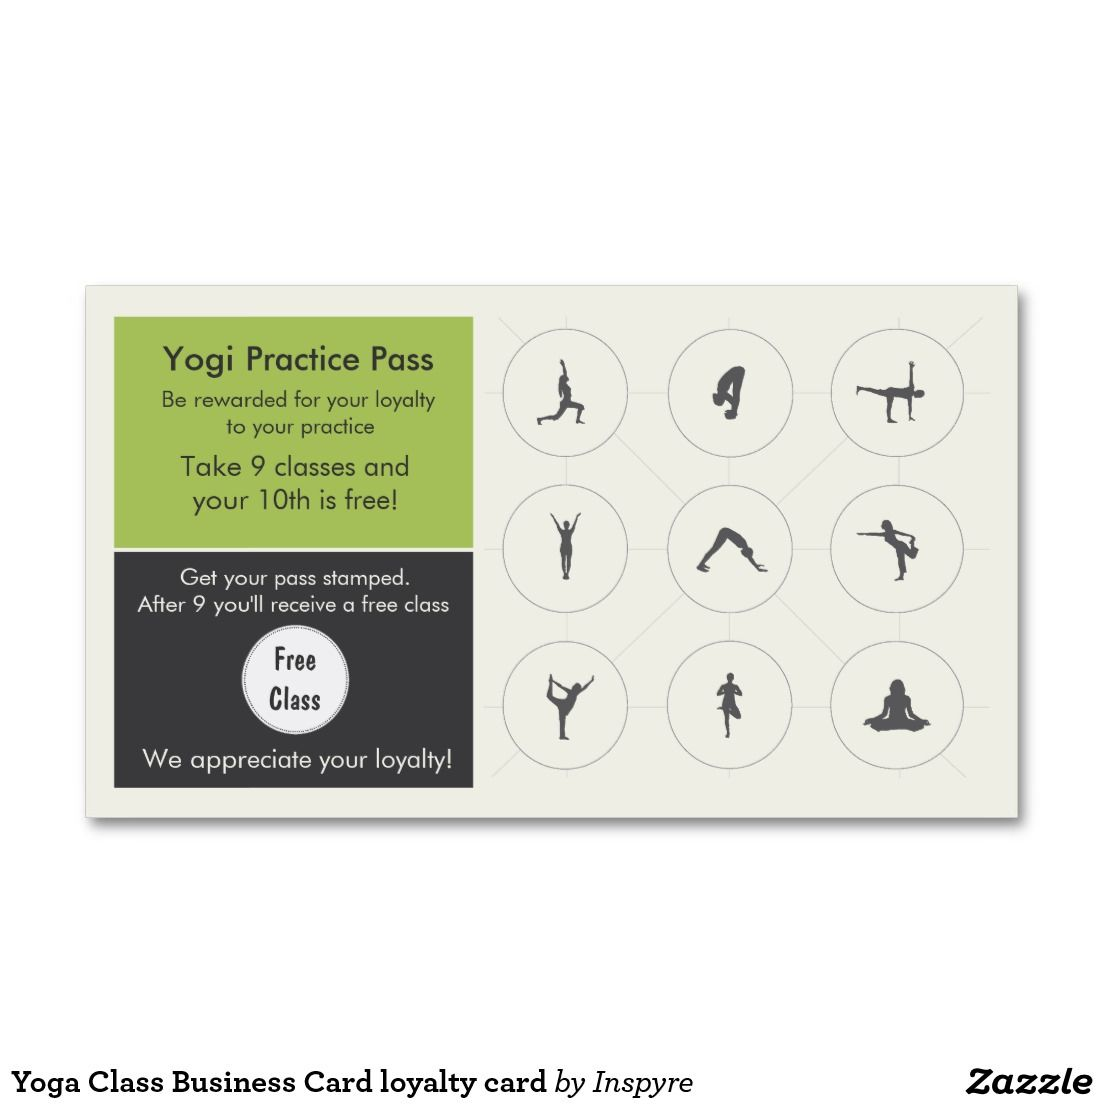 Yoga class business card loyalty card yoga studio pinterest yoga class business card loyalty card reheart Image collections